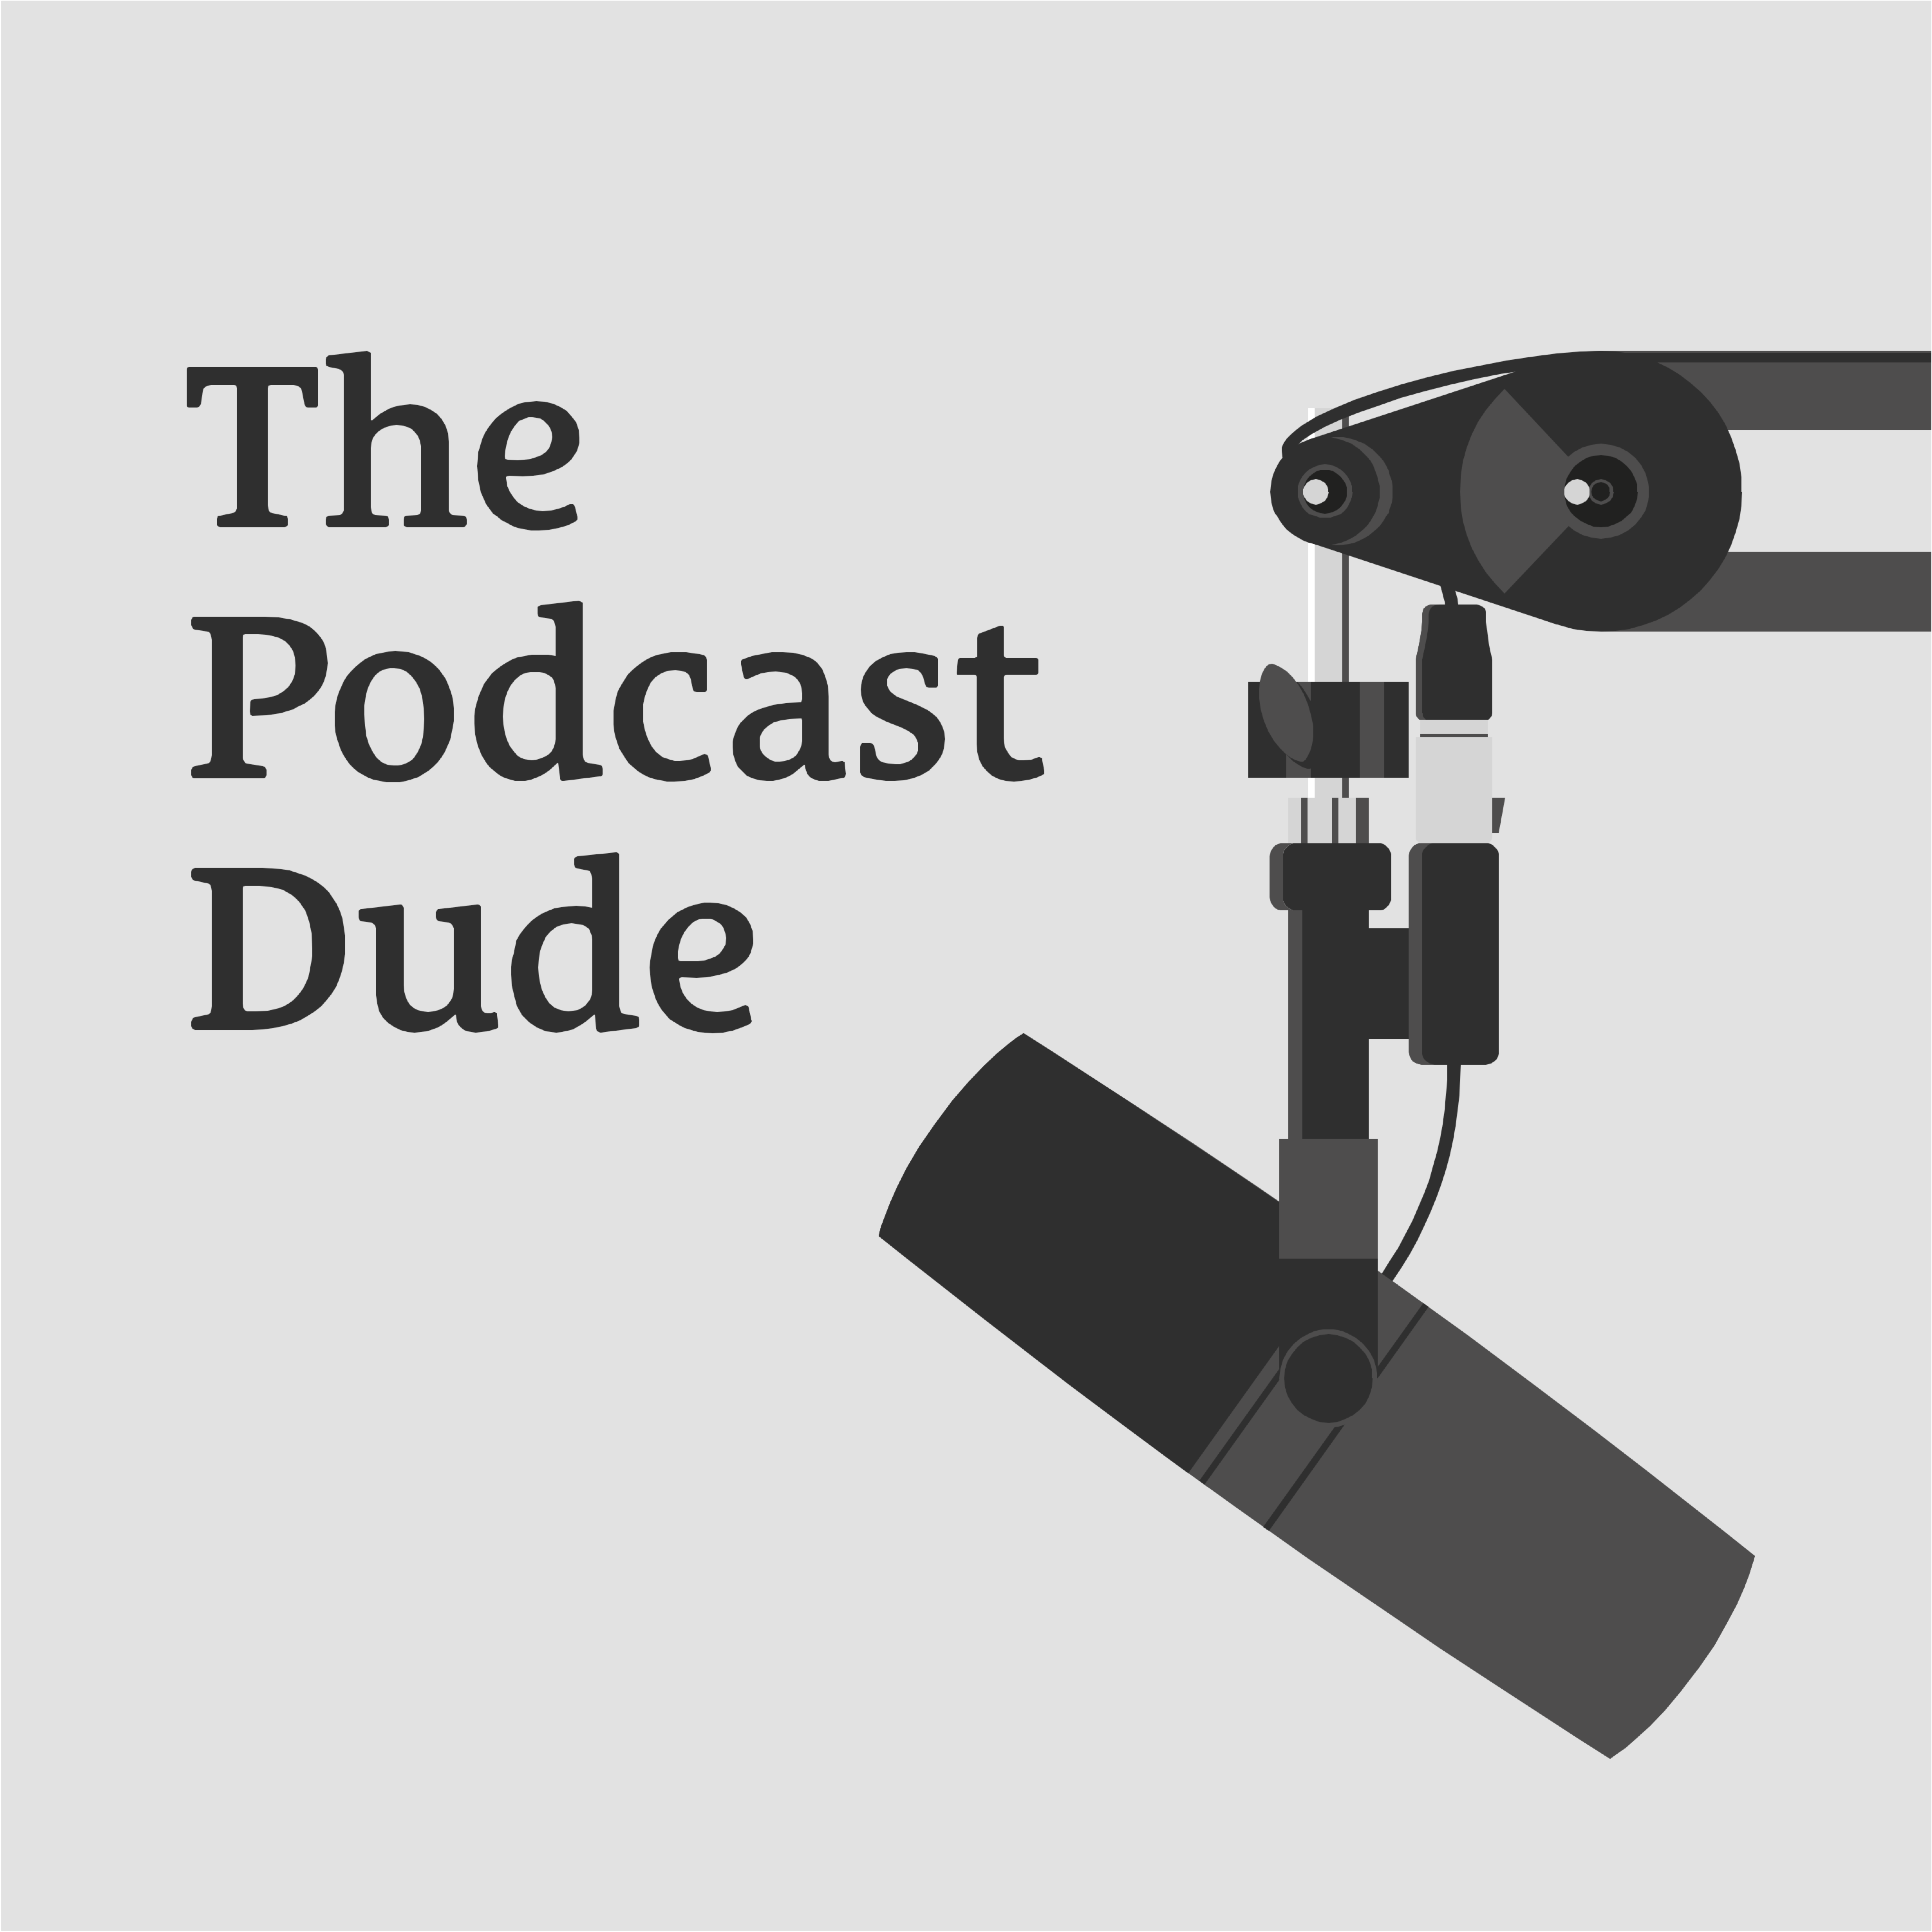 Thepodcastdude art new 2018